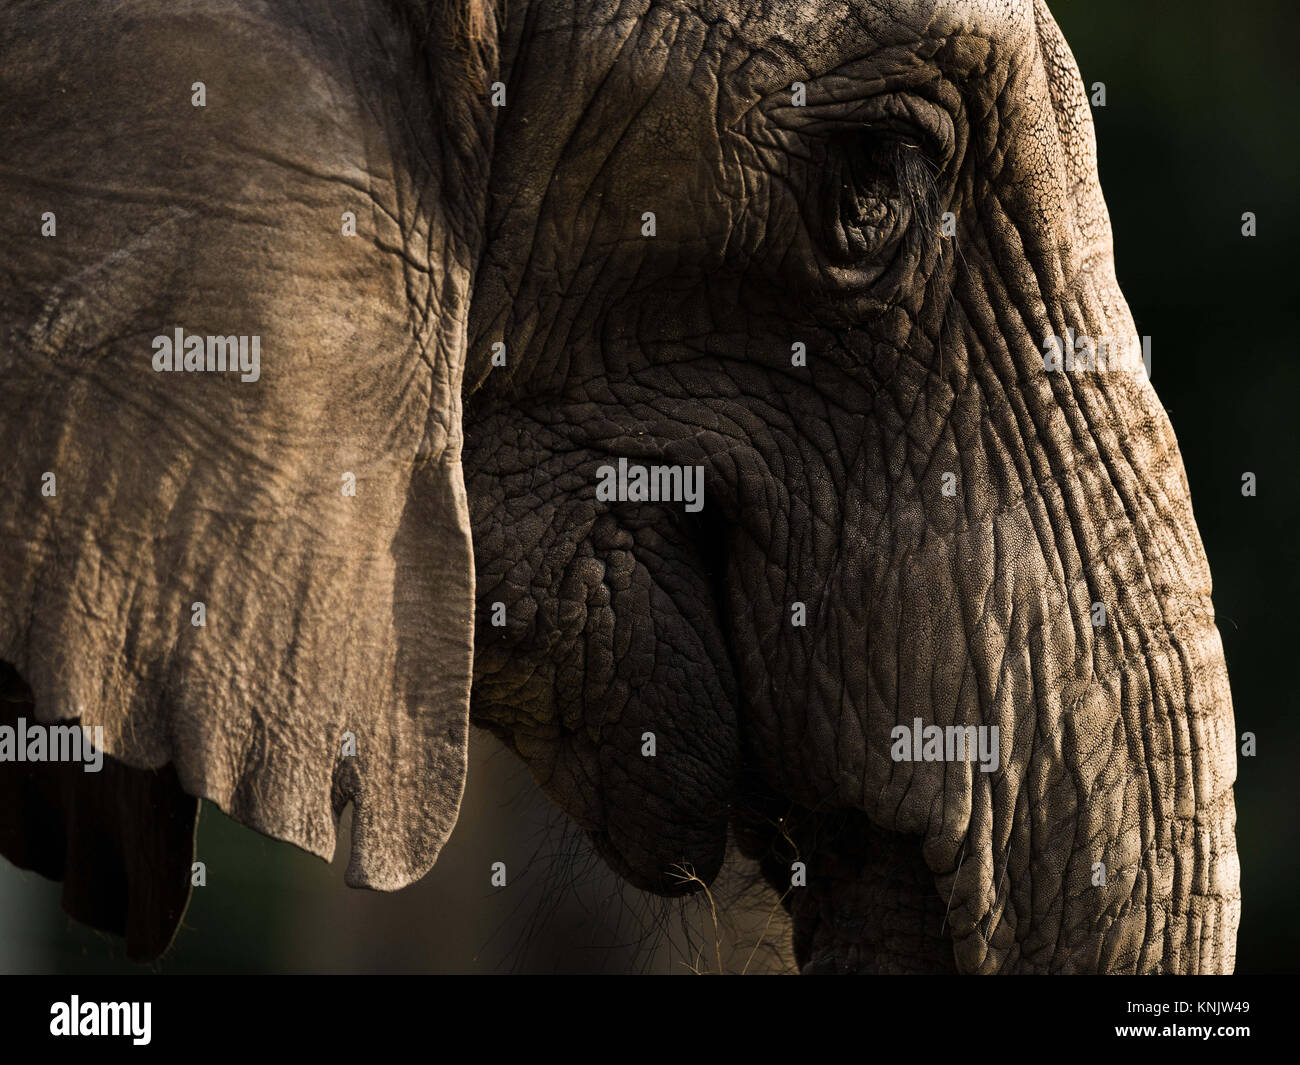 Miami, Forida, USA. 1st Dec, 2013. An African bush elephant. Elephants have several distinctive features, the most - Stock Image